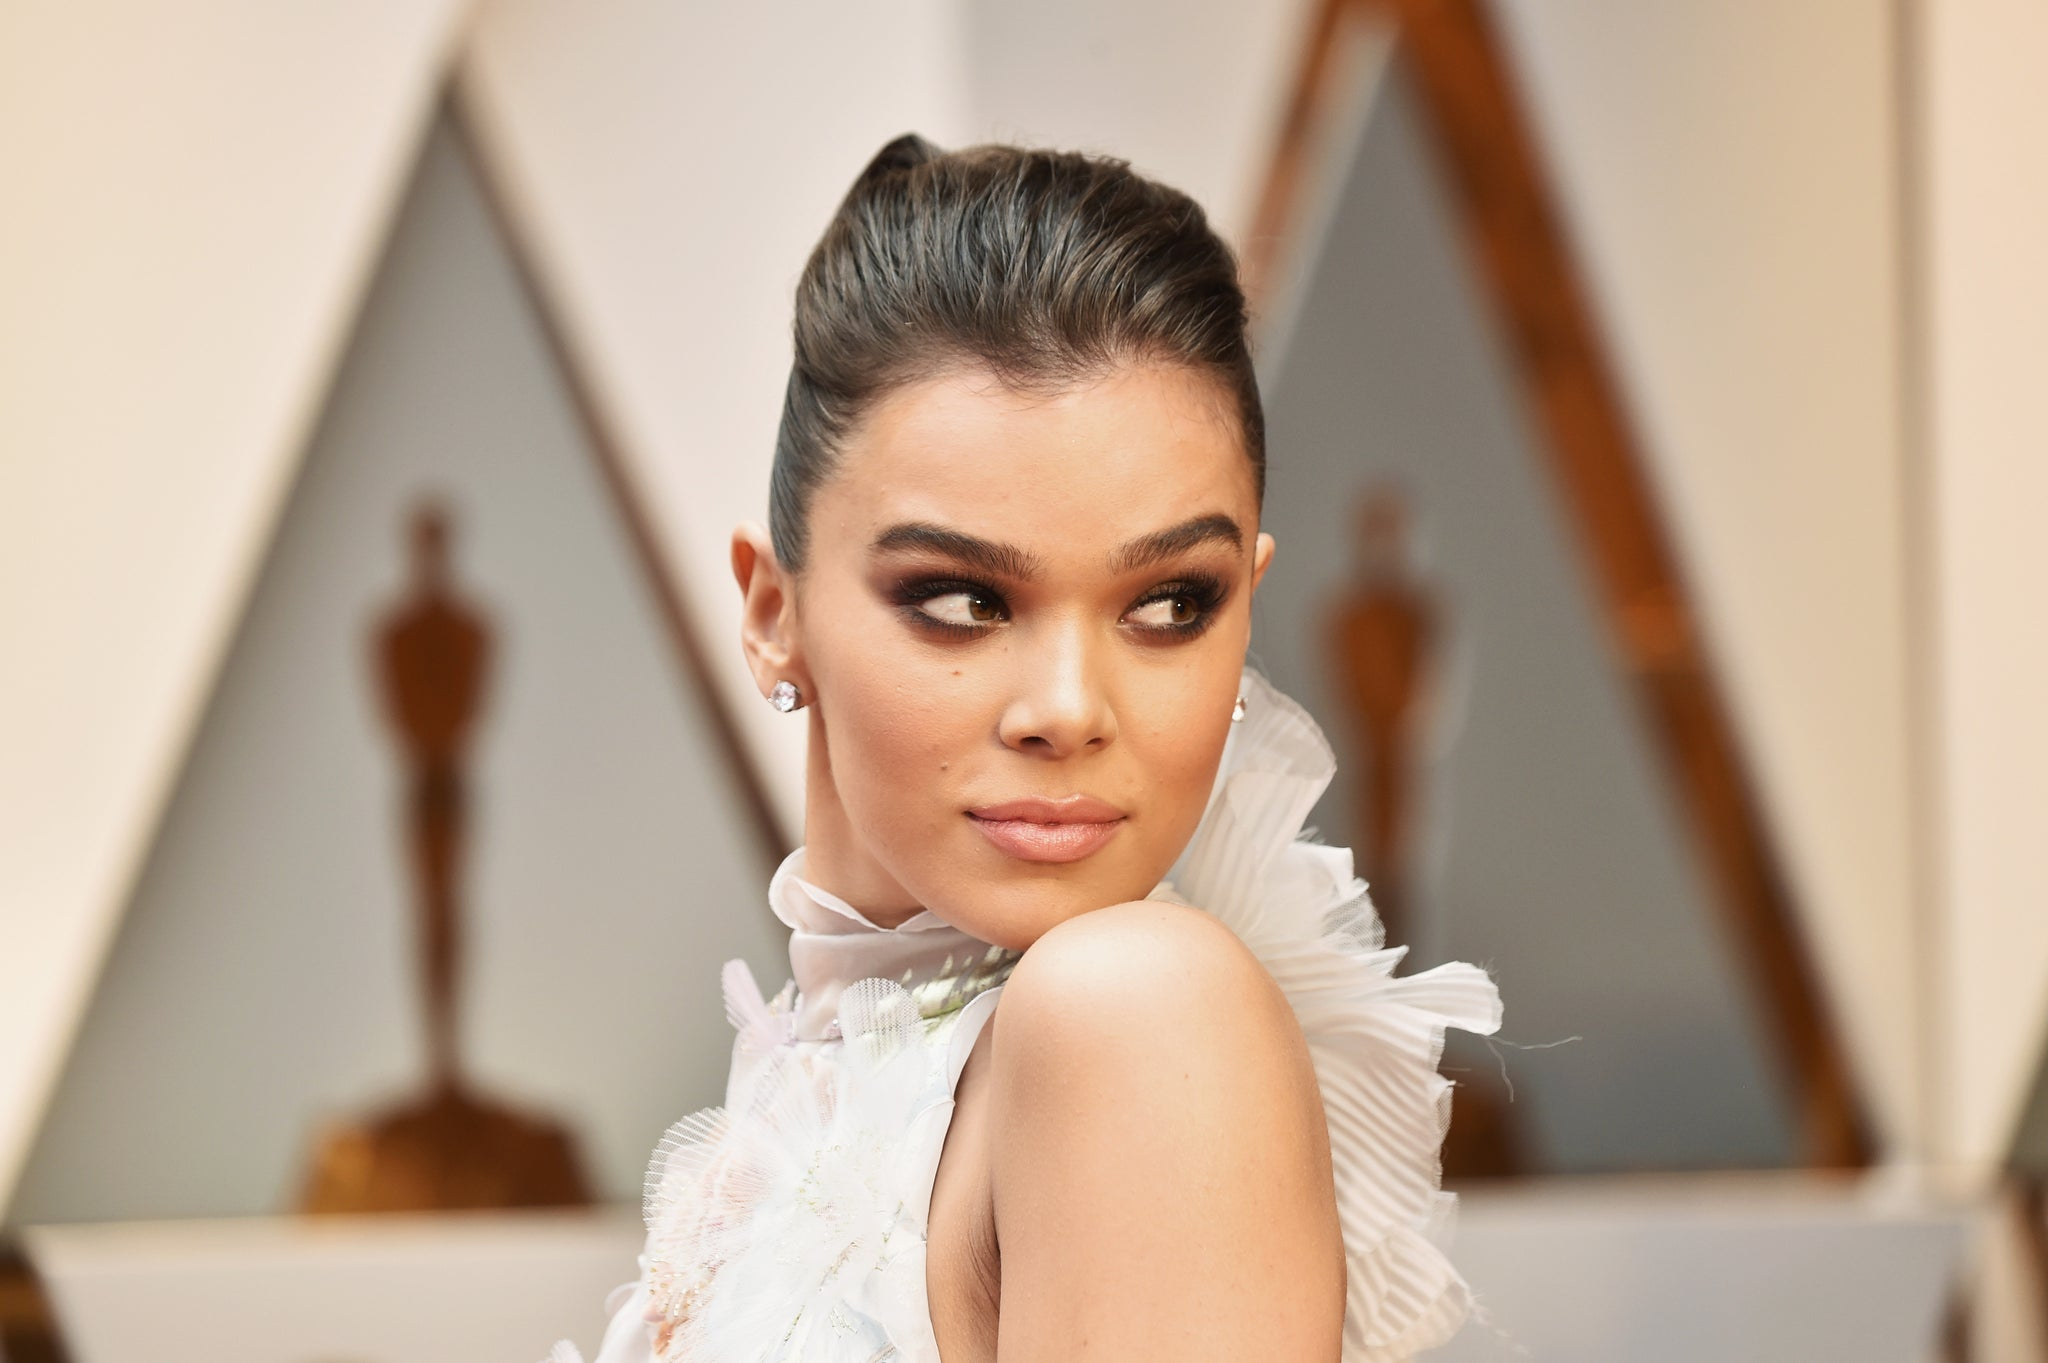 The Weird Move Hailee Steinfeld Does to Stay Fit While Traveling